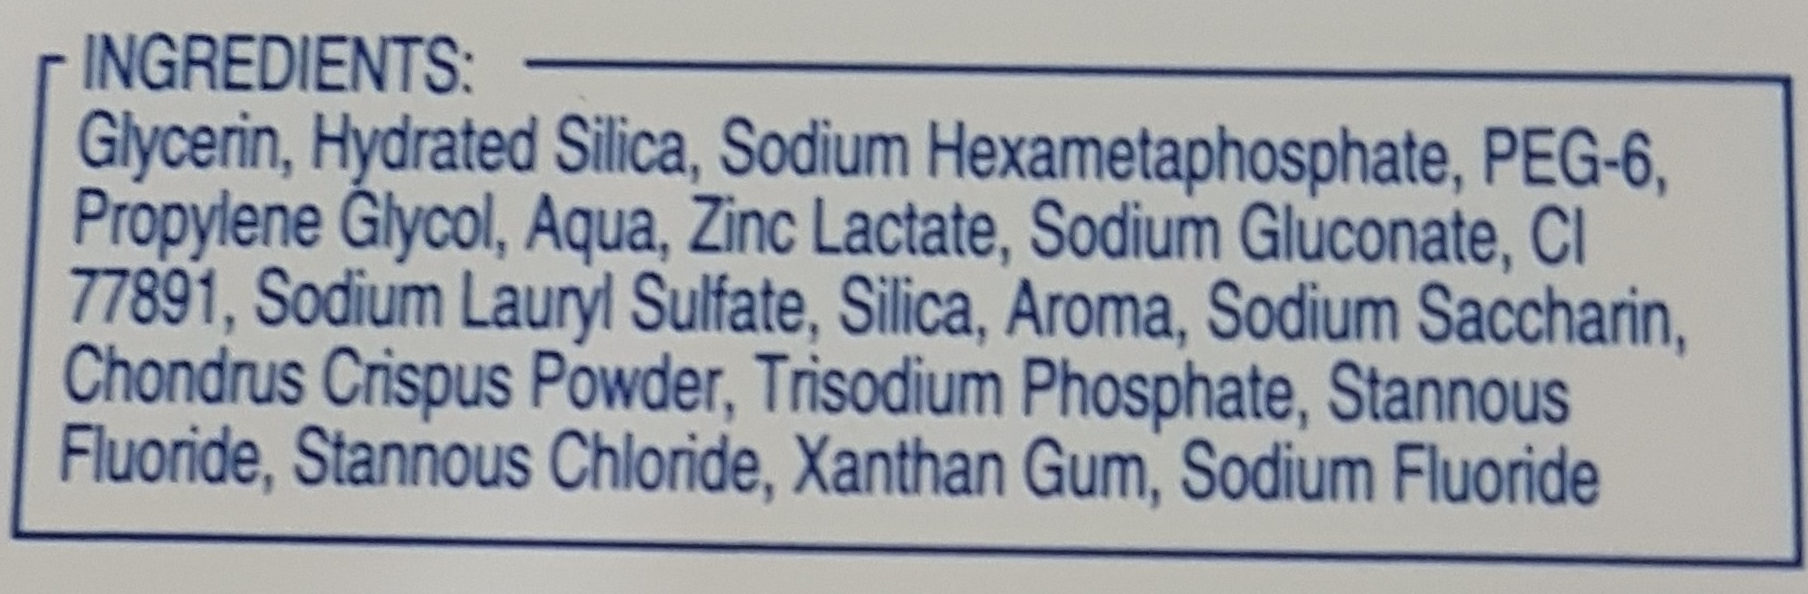 dentifrice oral b - Ingredients